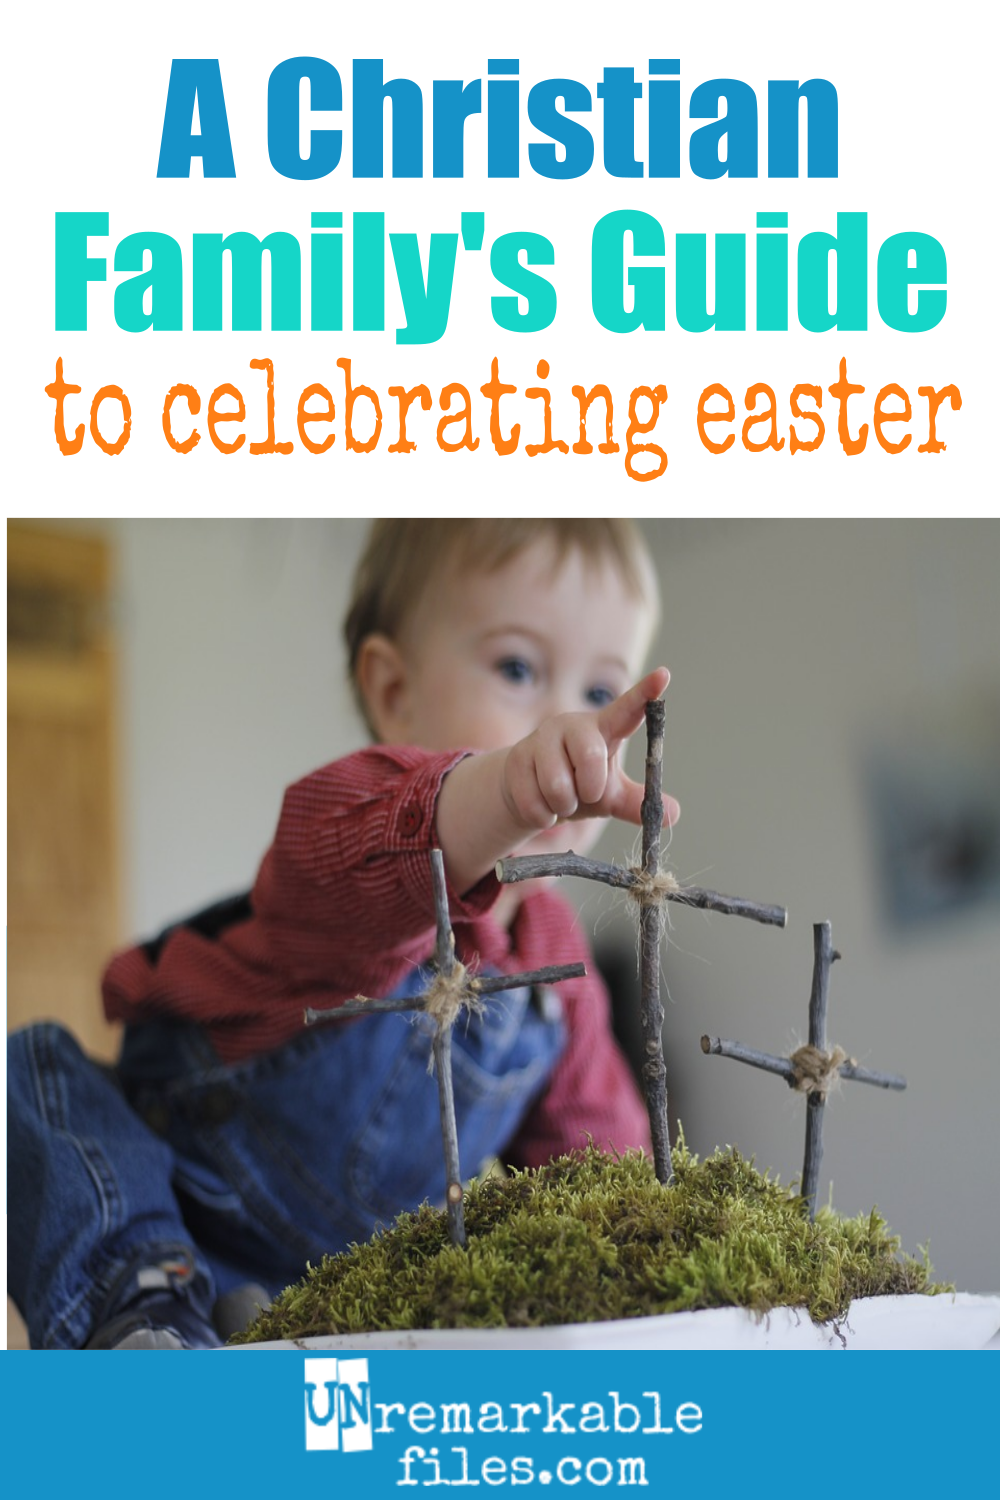 Unremarkable Files: Easter Ideas for Christian Families